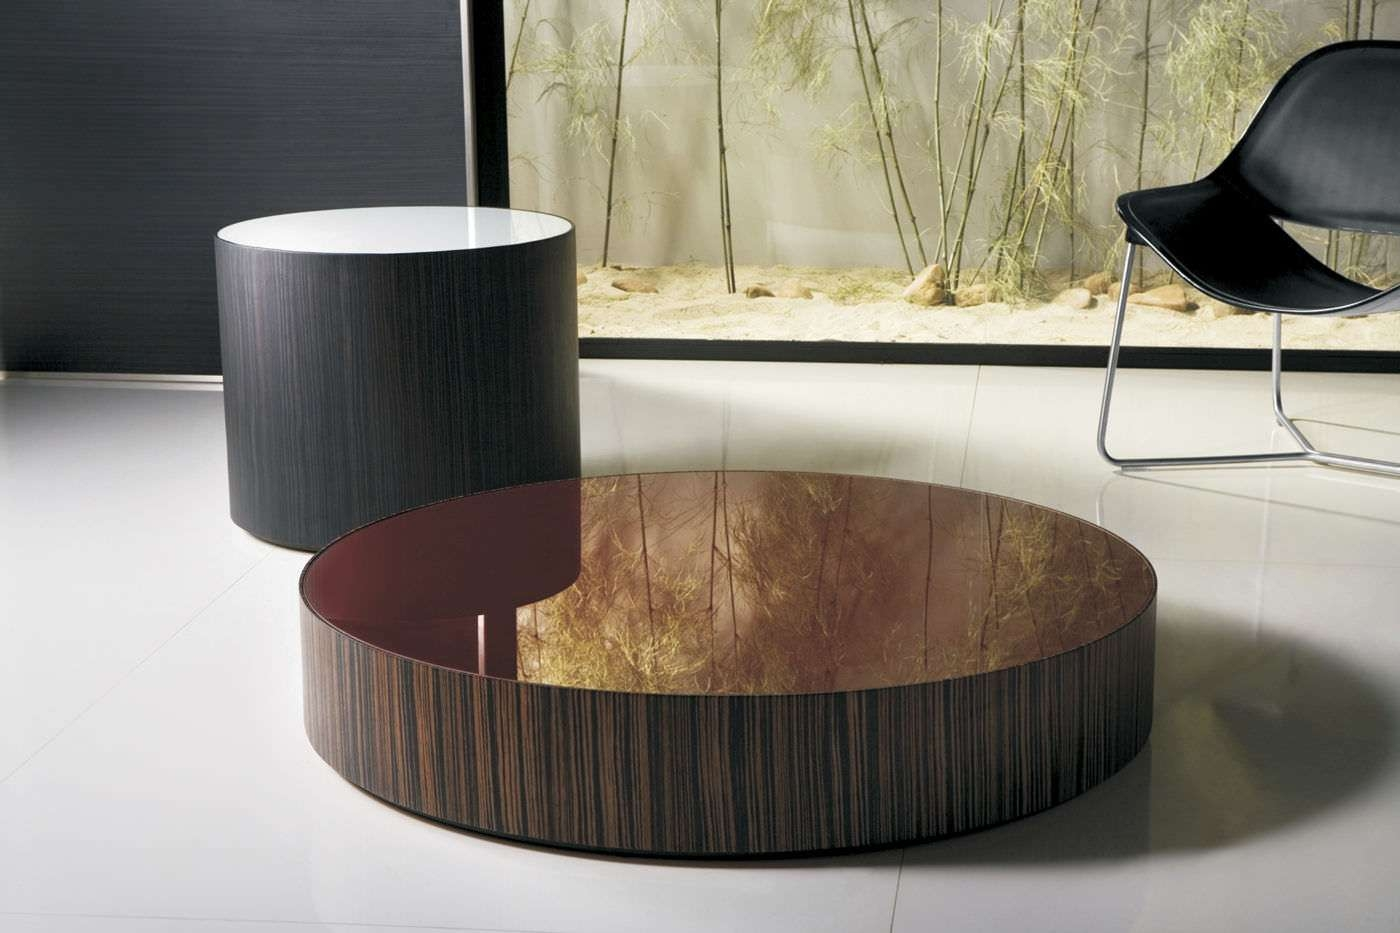 Contemporary Modern Coffee Tables Round : 12 Favorite Contemporary Pertaining To Widely Used Wood Modern Coffee Tables (View 5 of 20)